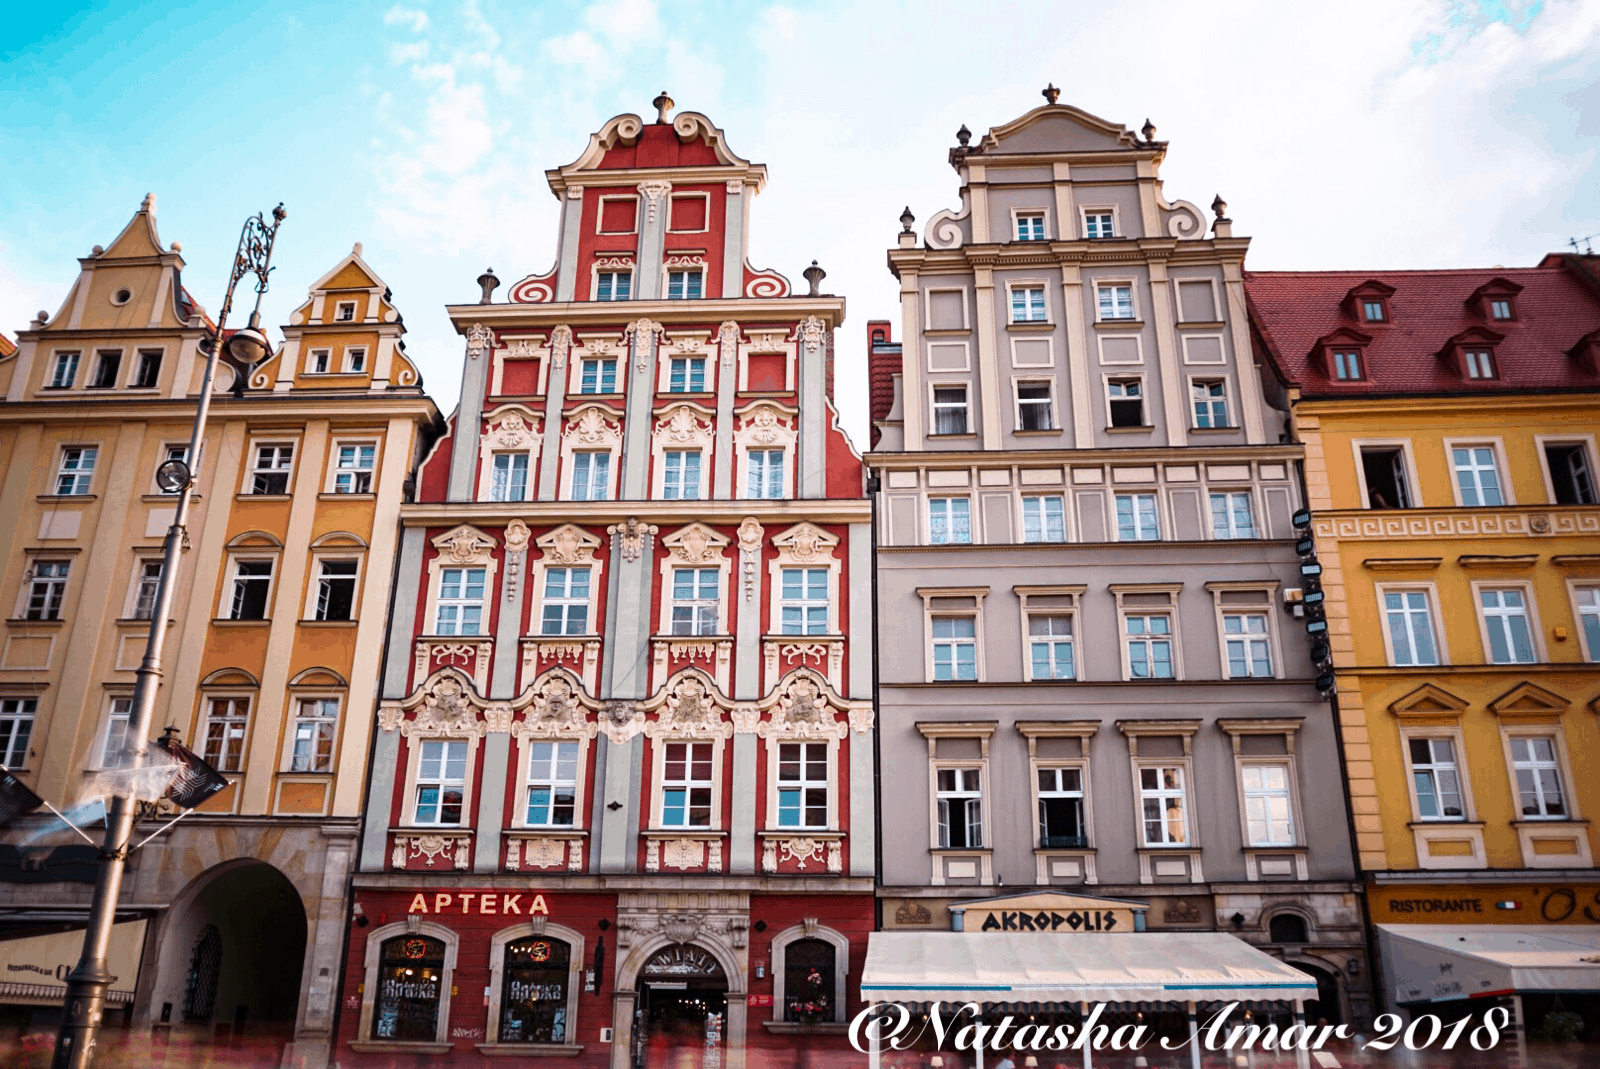 Top Things to Do in Wrocław: Does This City in Poland Have Europe's Prettiest Old Town?